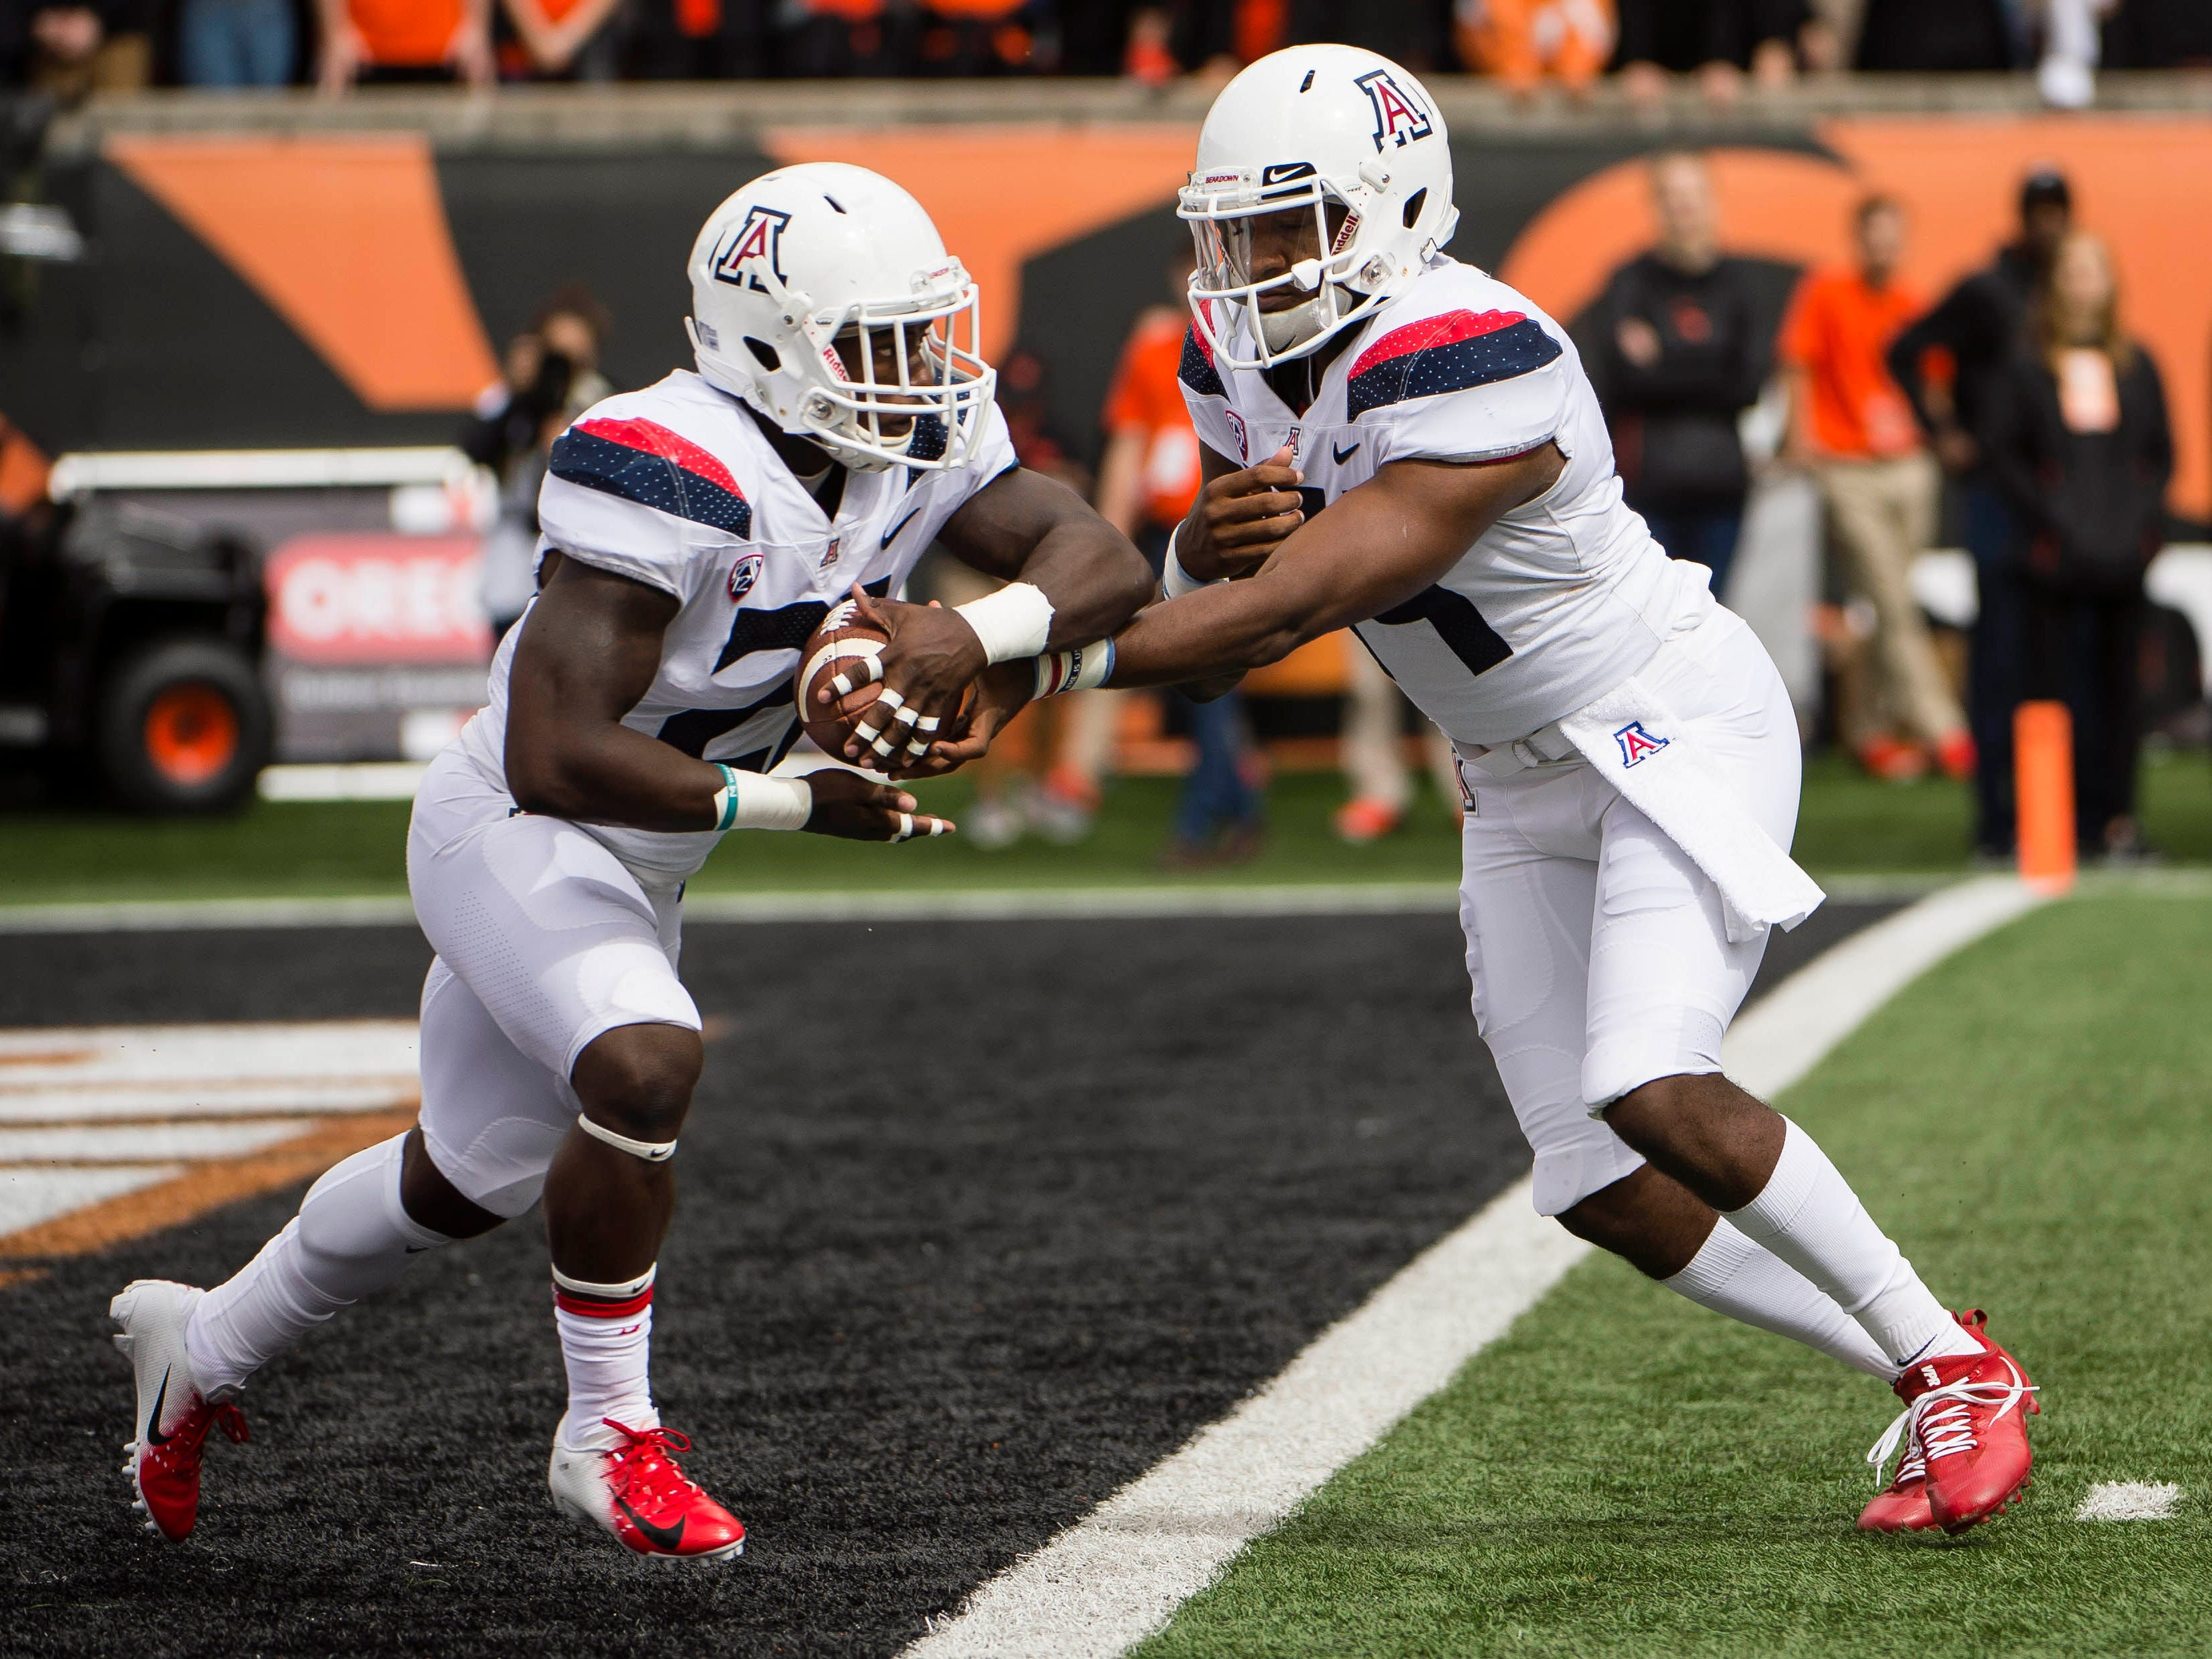 Sep 22, 2018; Corvallis, OR, USA; Arizona Wildcats quarterback Khalil Tate (14) hands the ball off to running back J.J. Taylor (21) during the first half against the Oregon State Beavers at Reser Stadium.